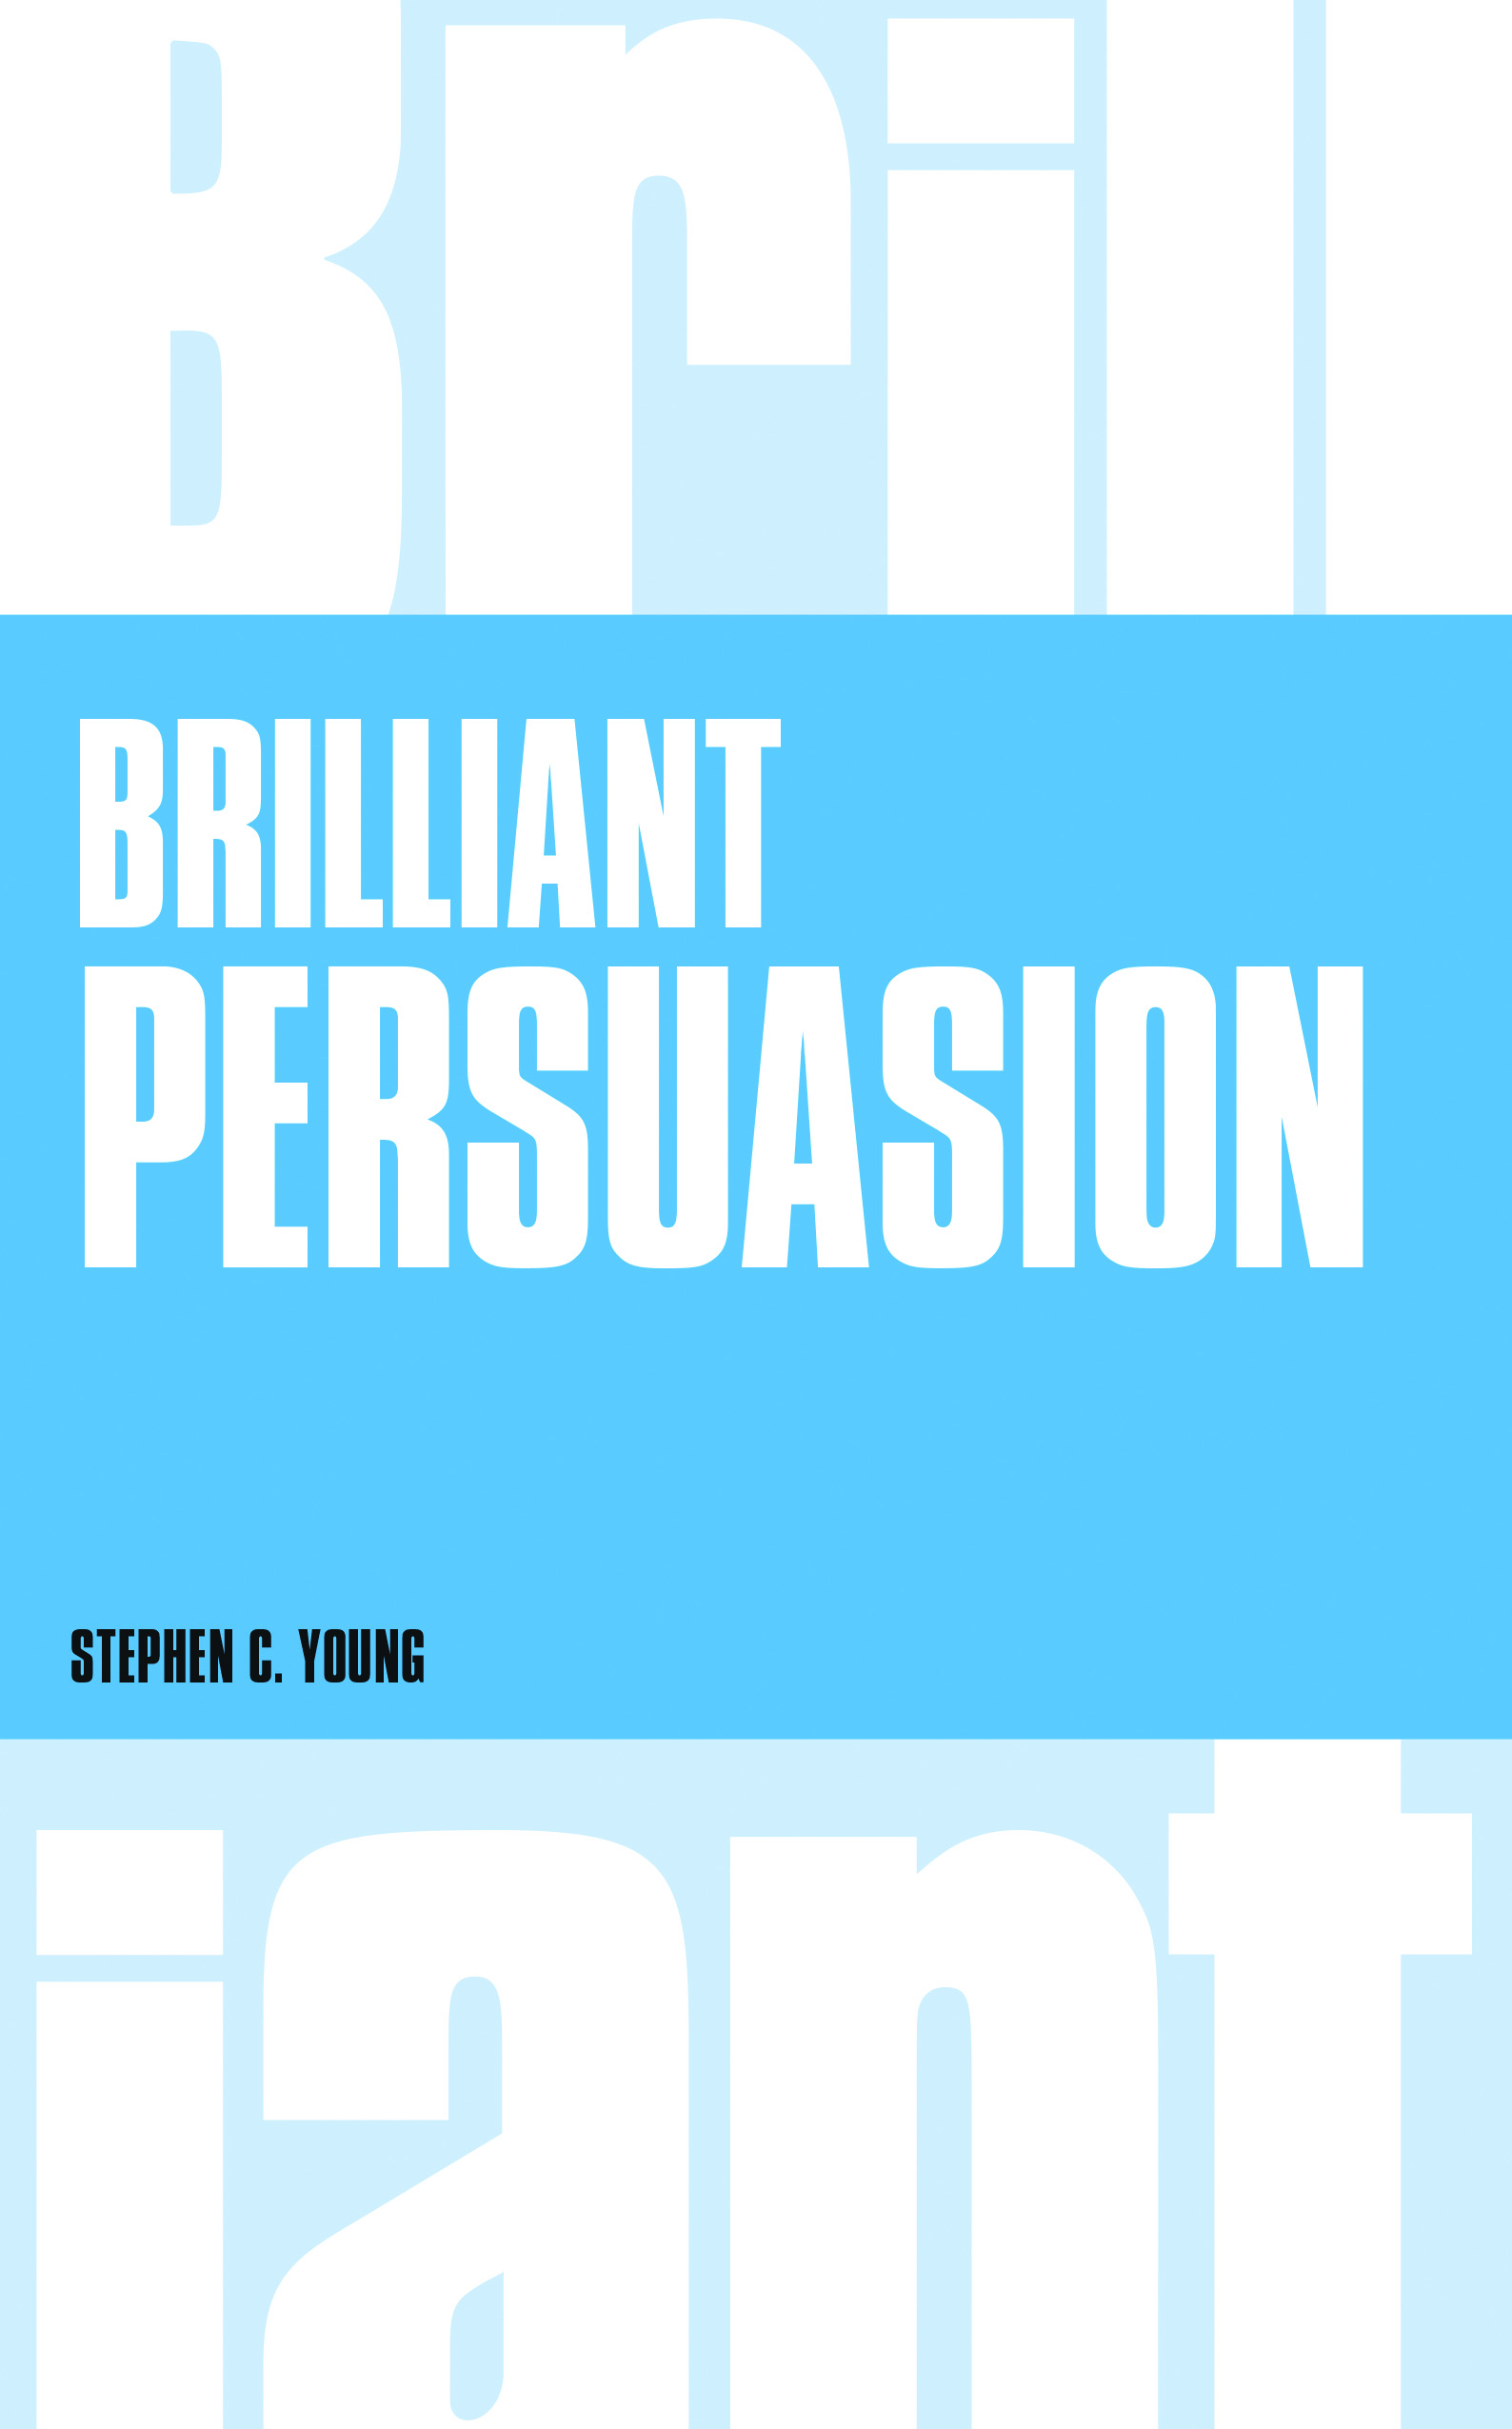 Brilliant Persuasion by Stephen C Young